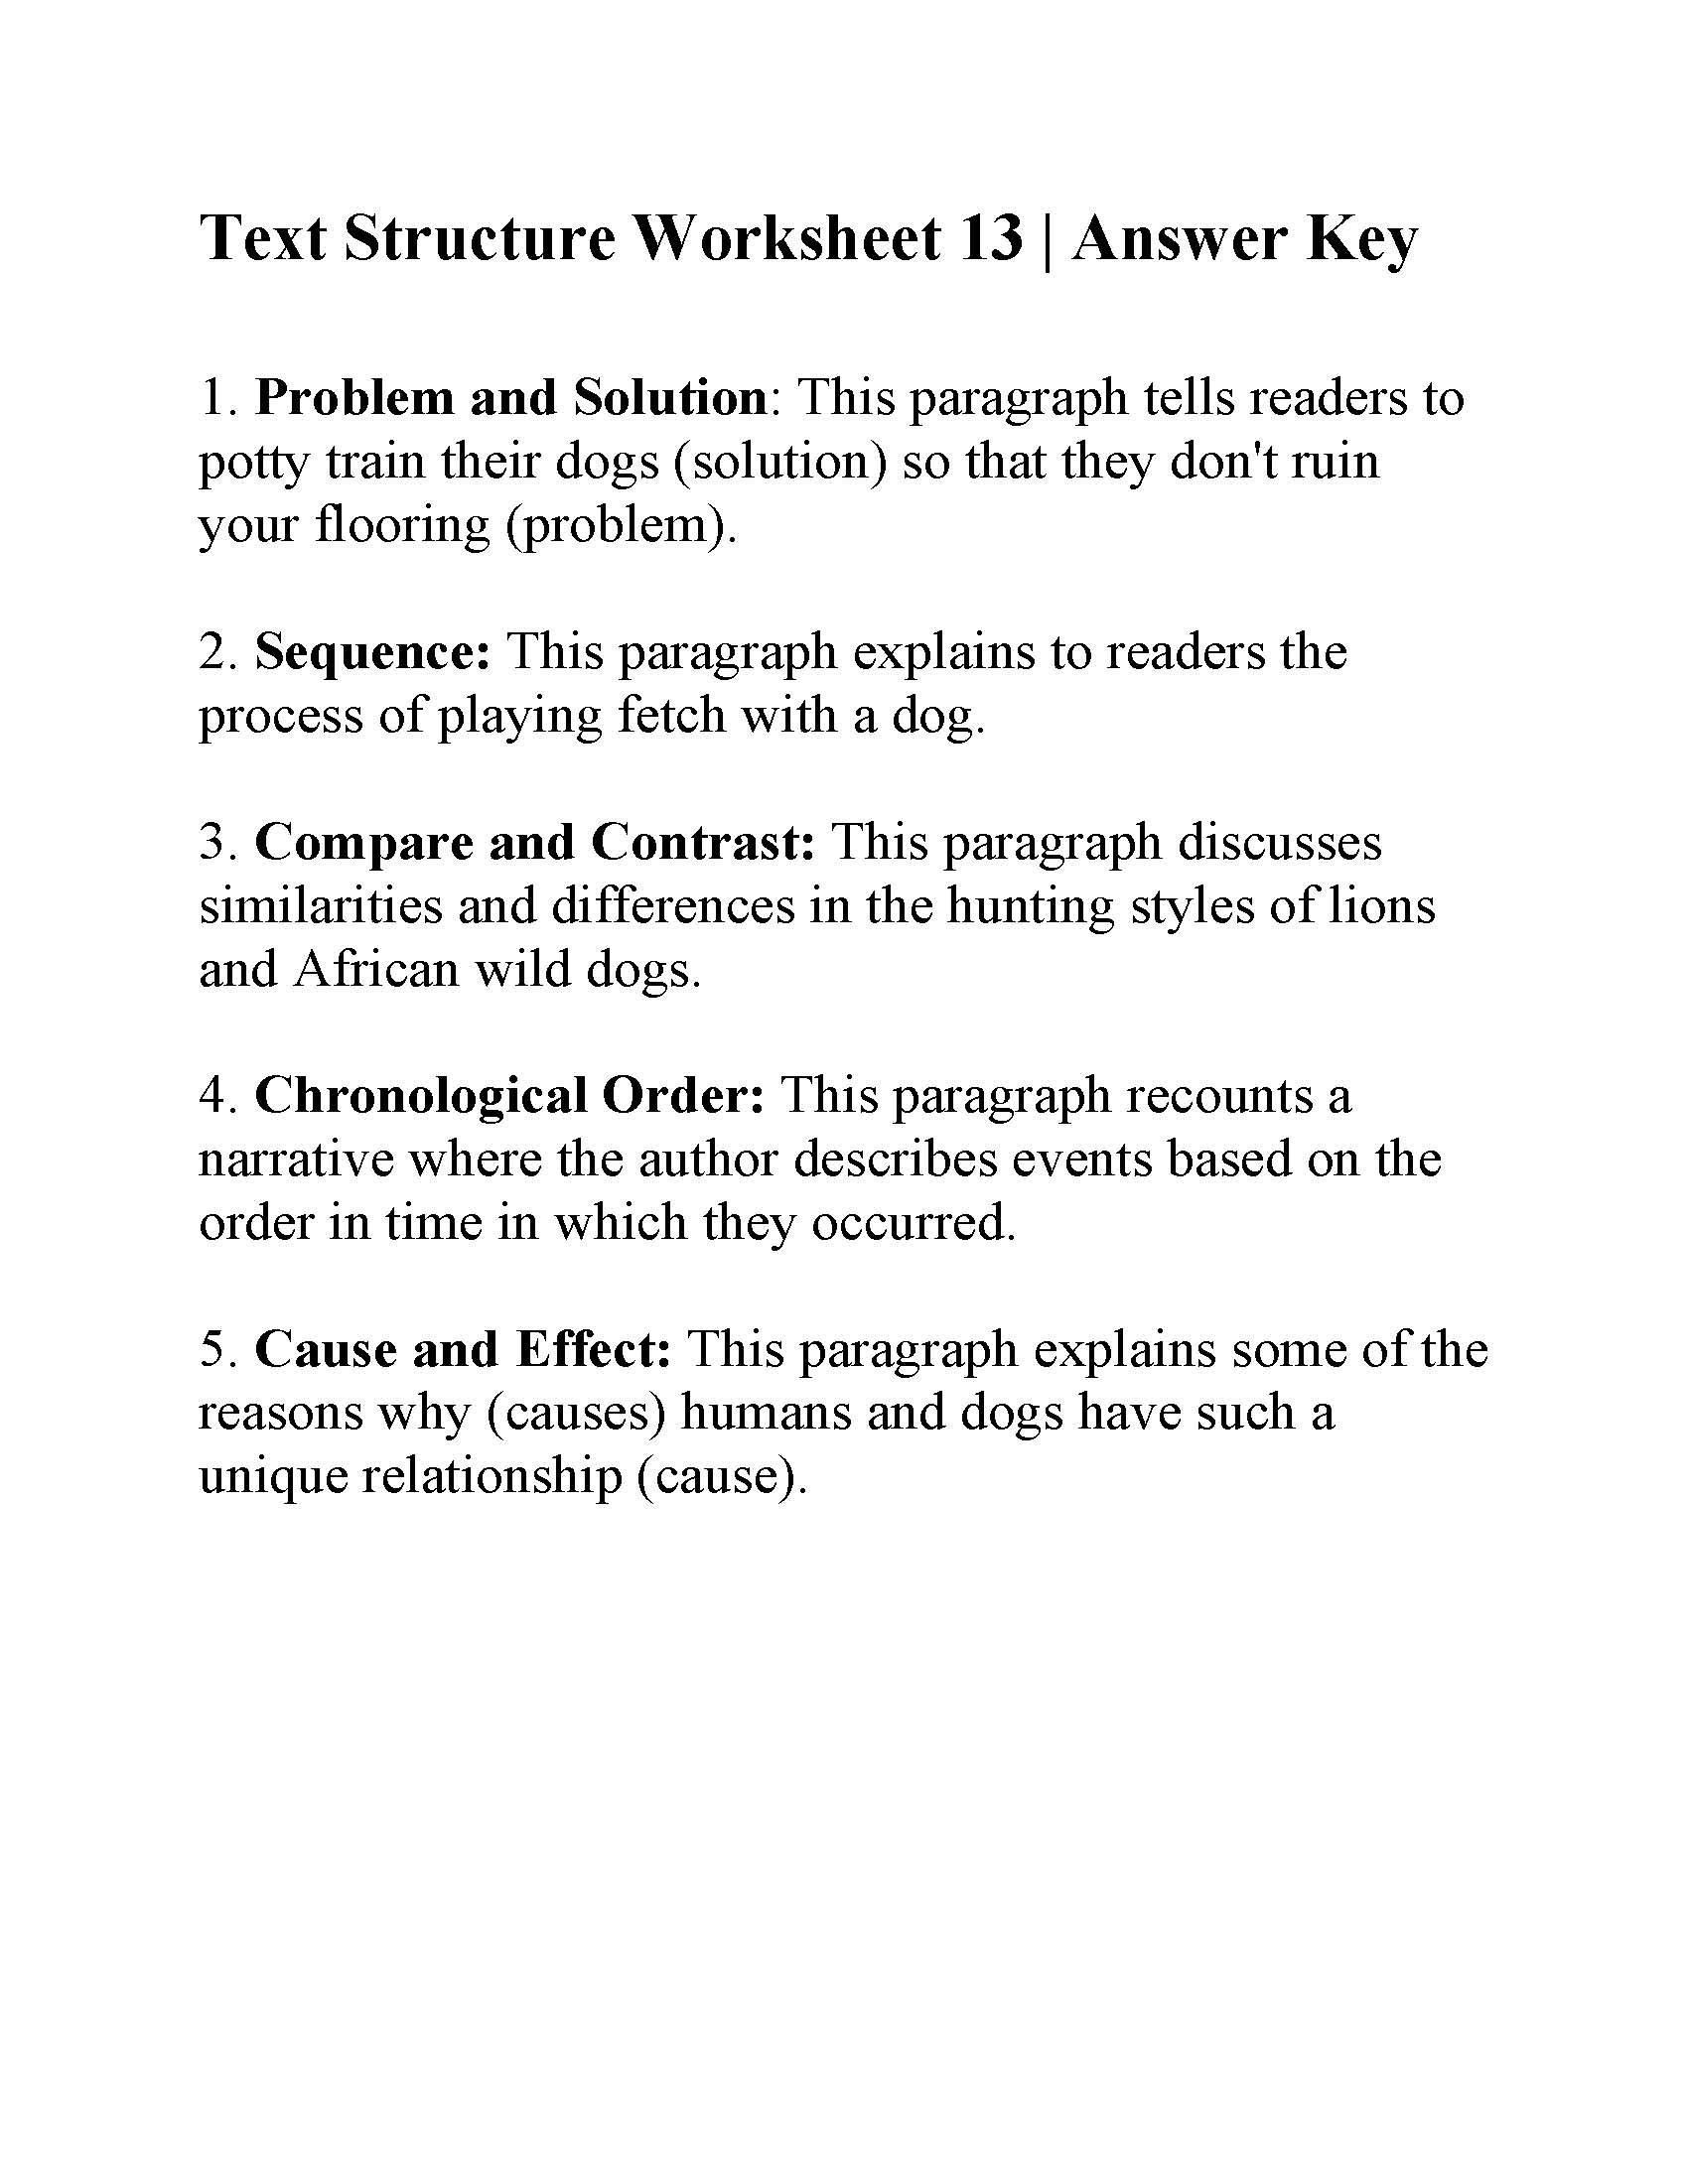 Text Structure 5th Grade Worksheets Text Structure Worksheet Answers Worksheets Matematik Games